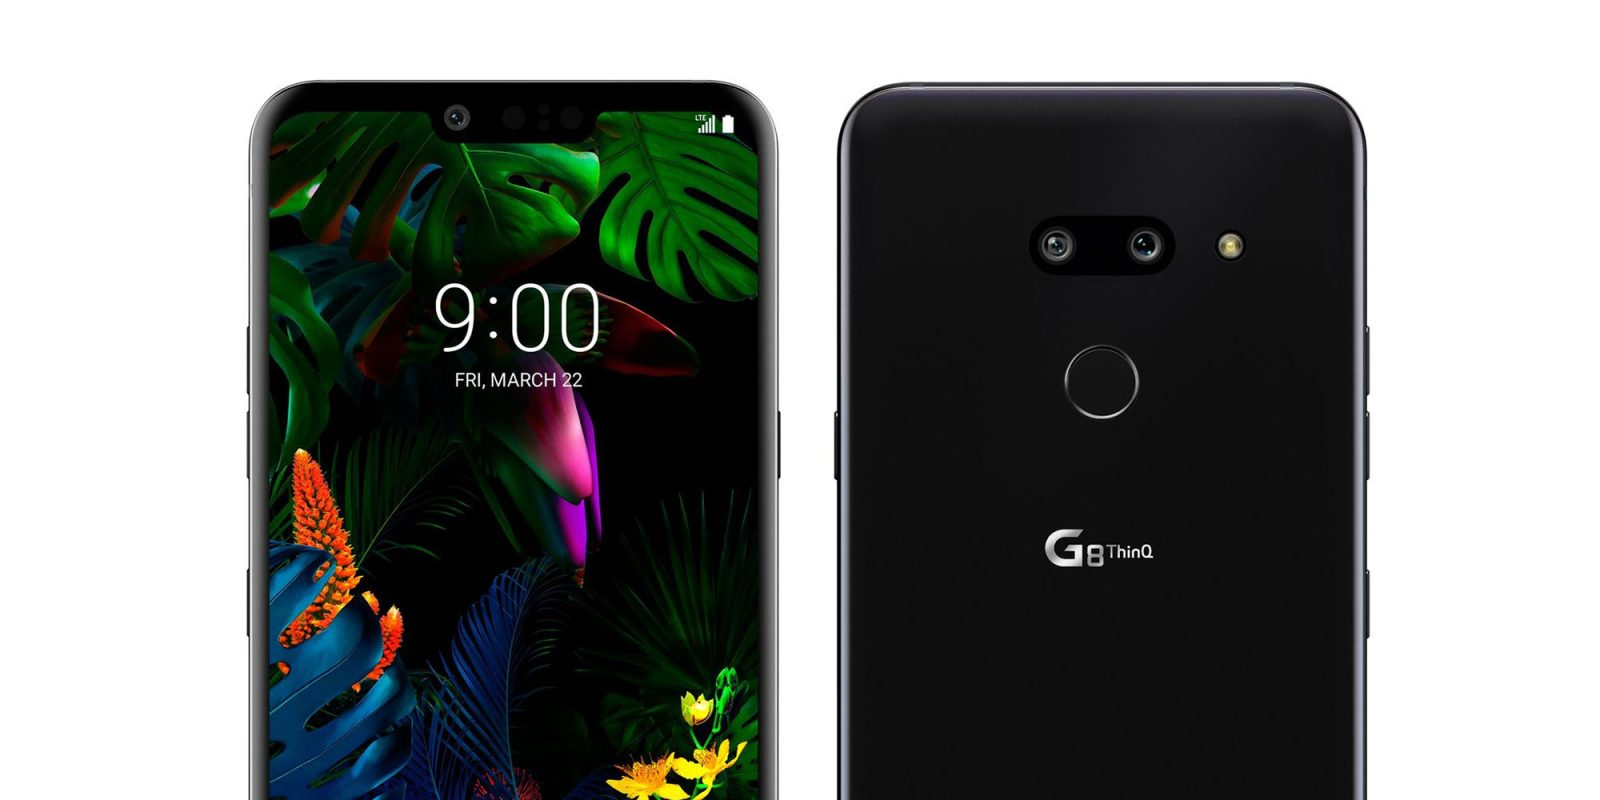 LG G8 ThinQ leak shows off all angles, notch, and bezels - 9to5Google